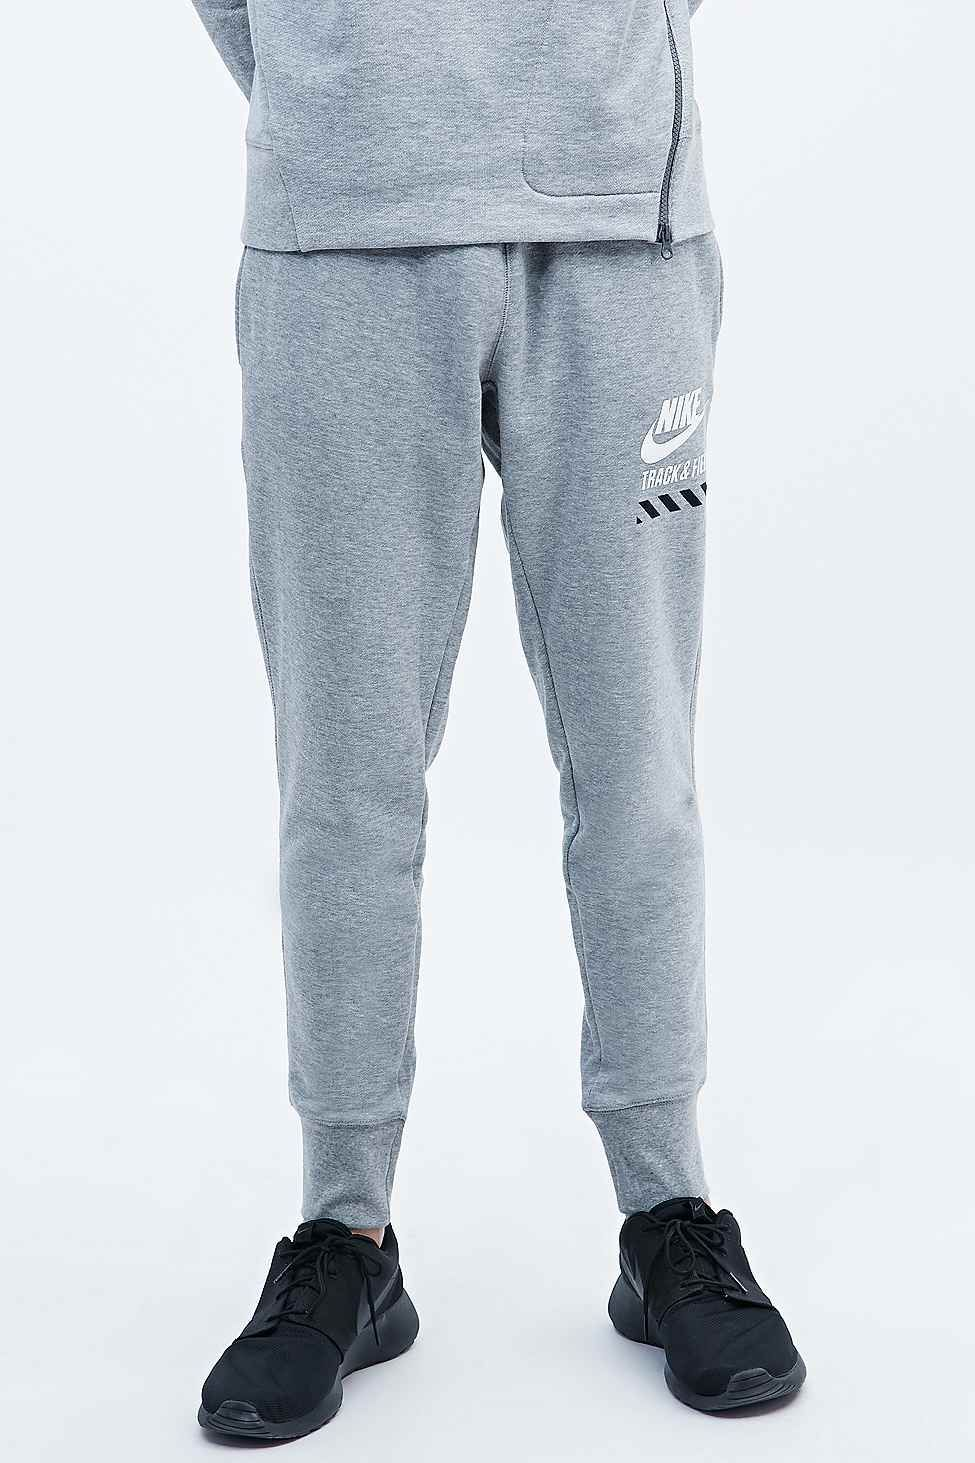 Nike Track and Field Cuff Joggers in Grey - Urban Outfitters